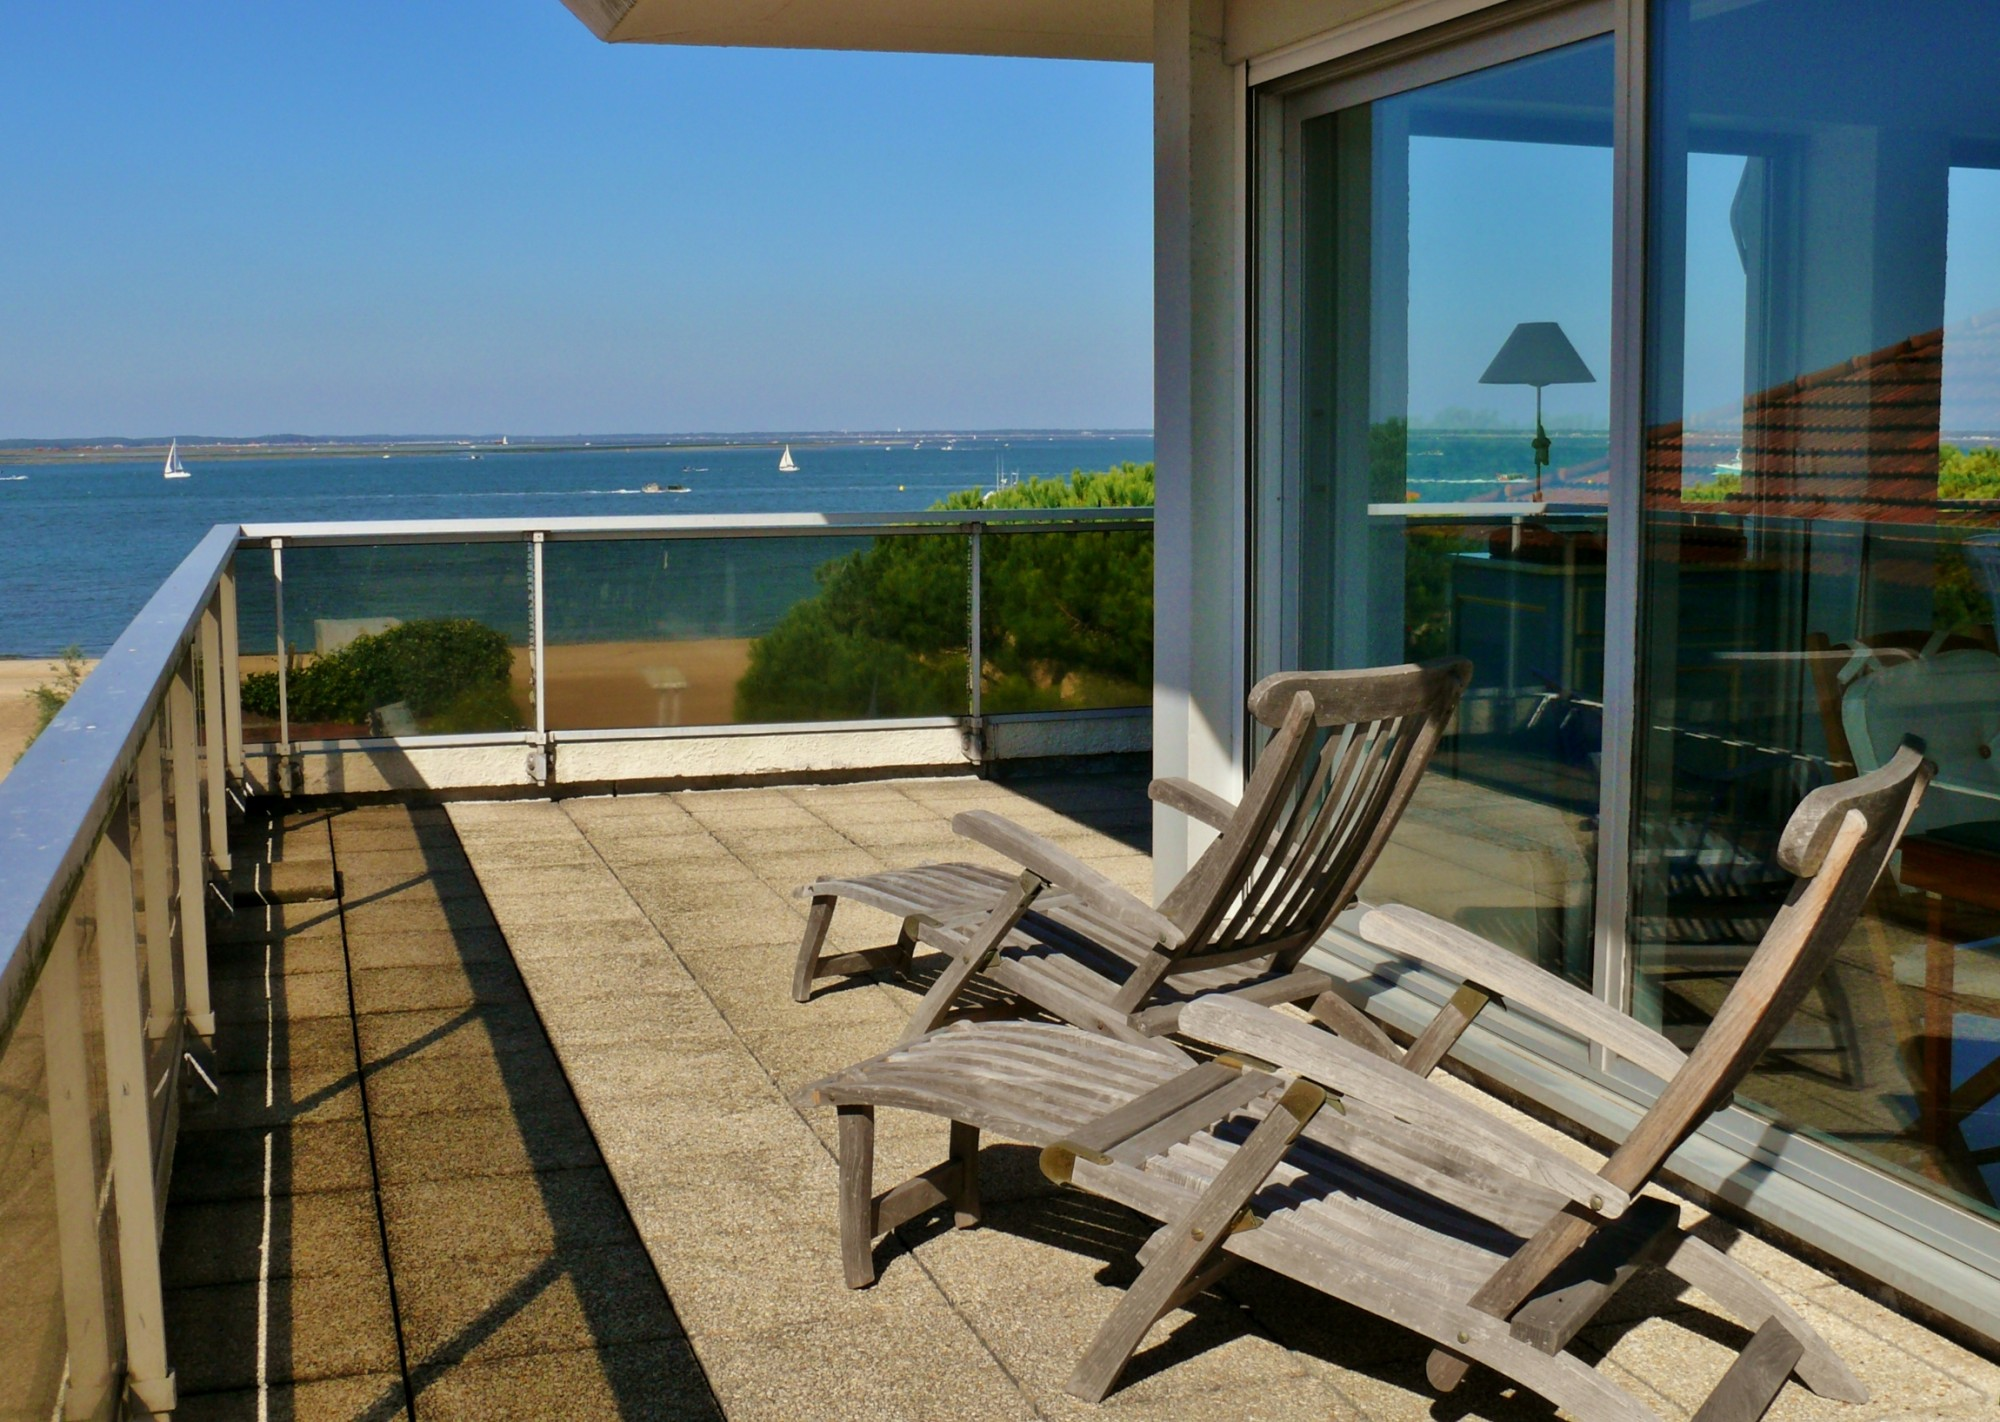 arcachon centre ville appartement dernier tage terrasse vue mer barnes bassin d 39 arcachon. Black Bedroom Furniture Sets. Home Design Ideas